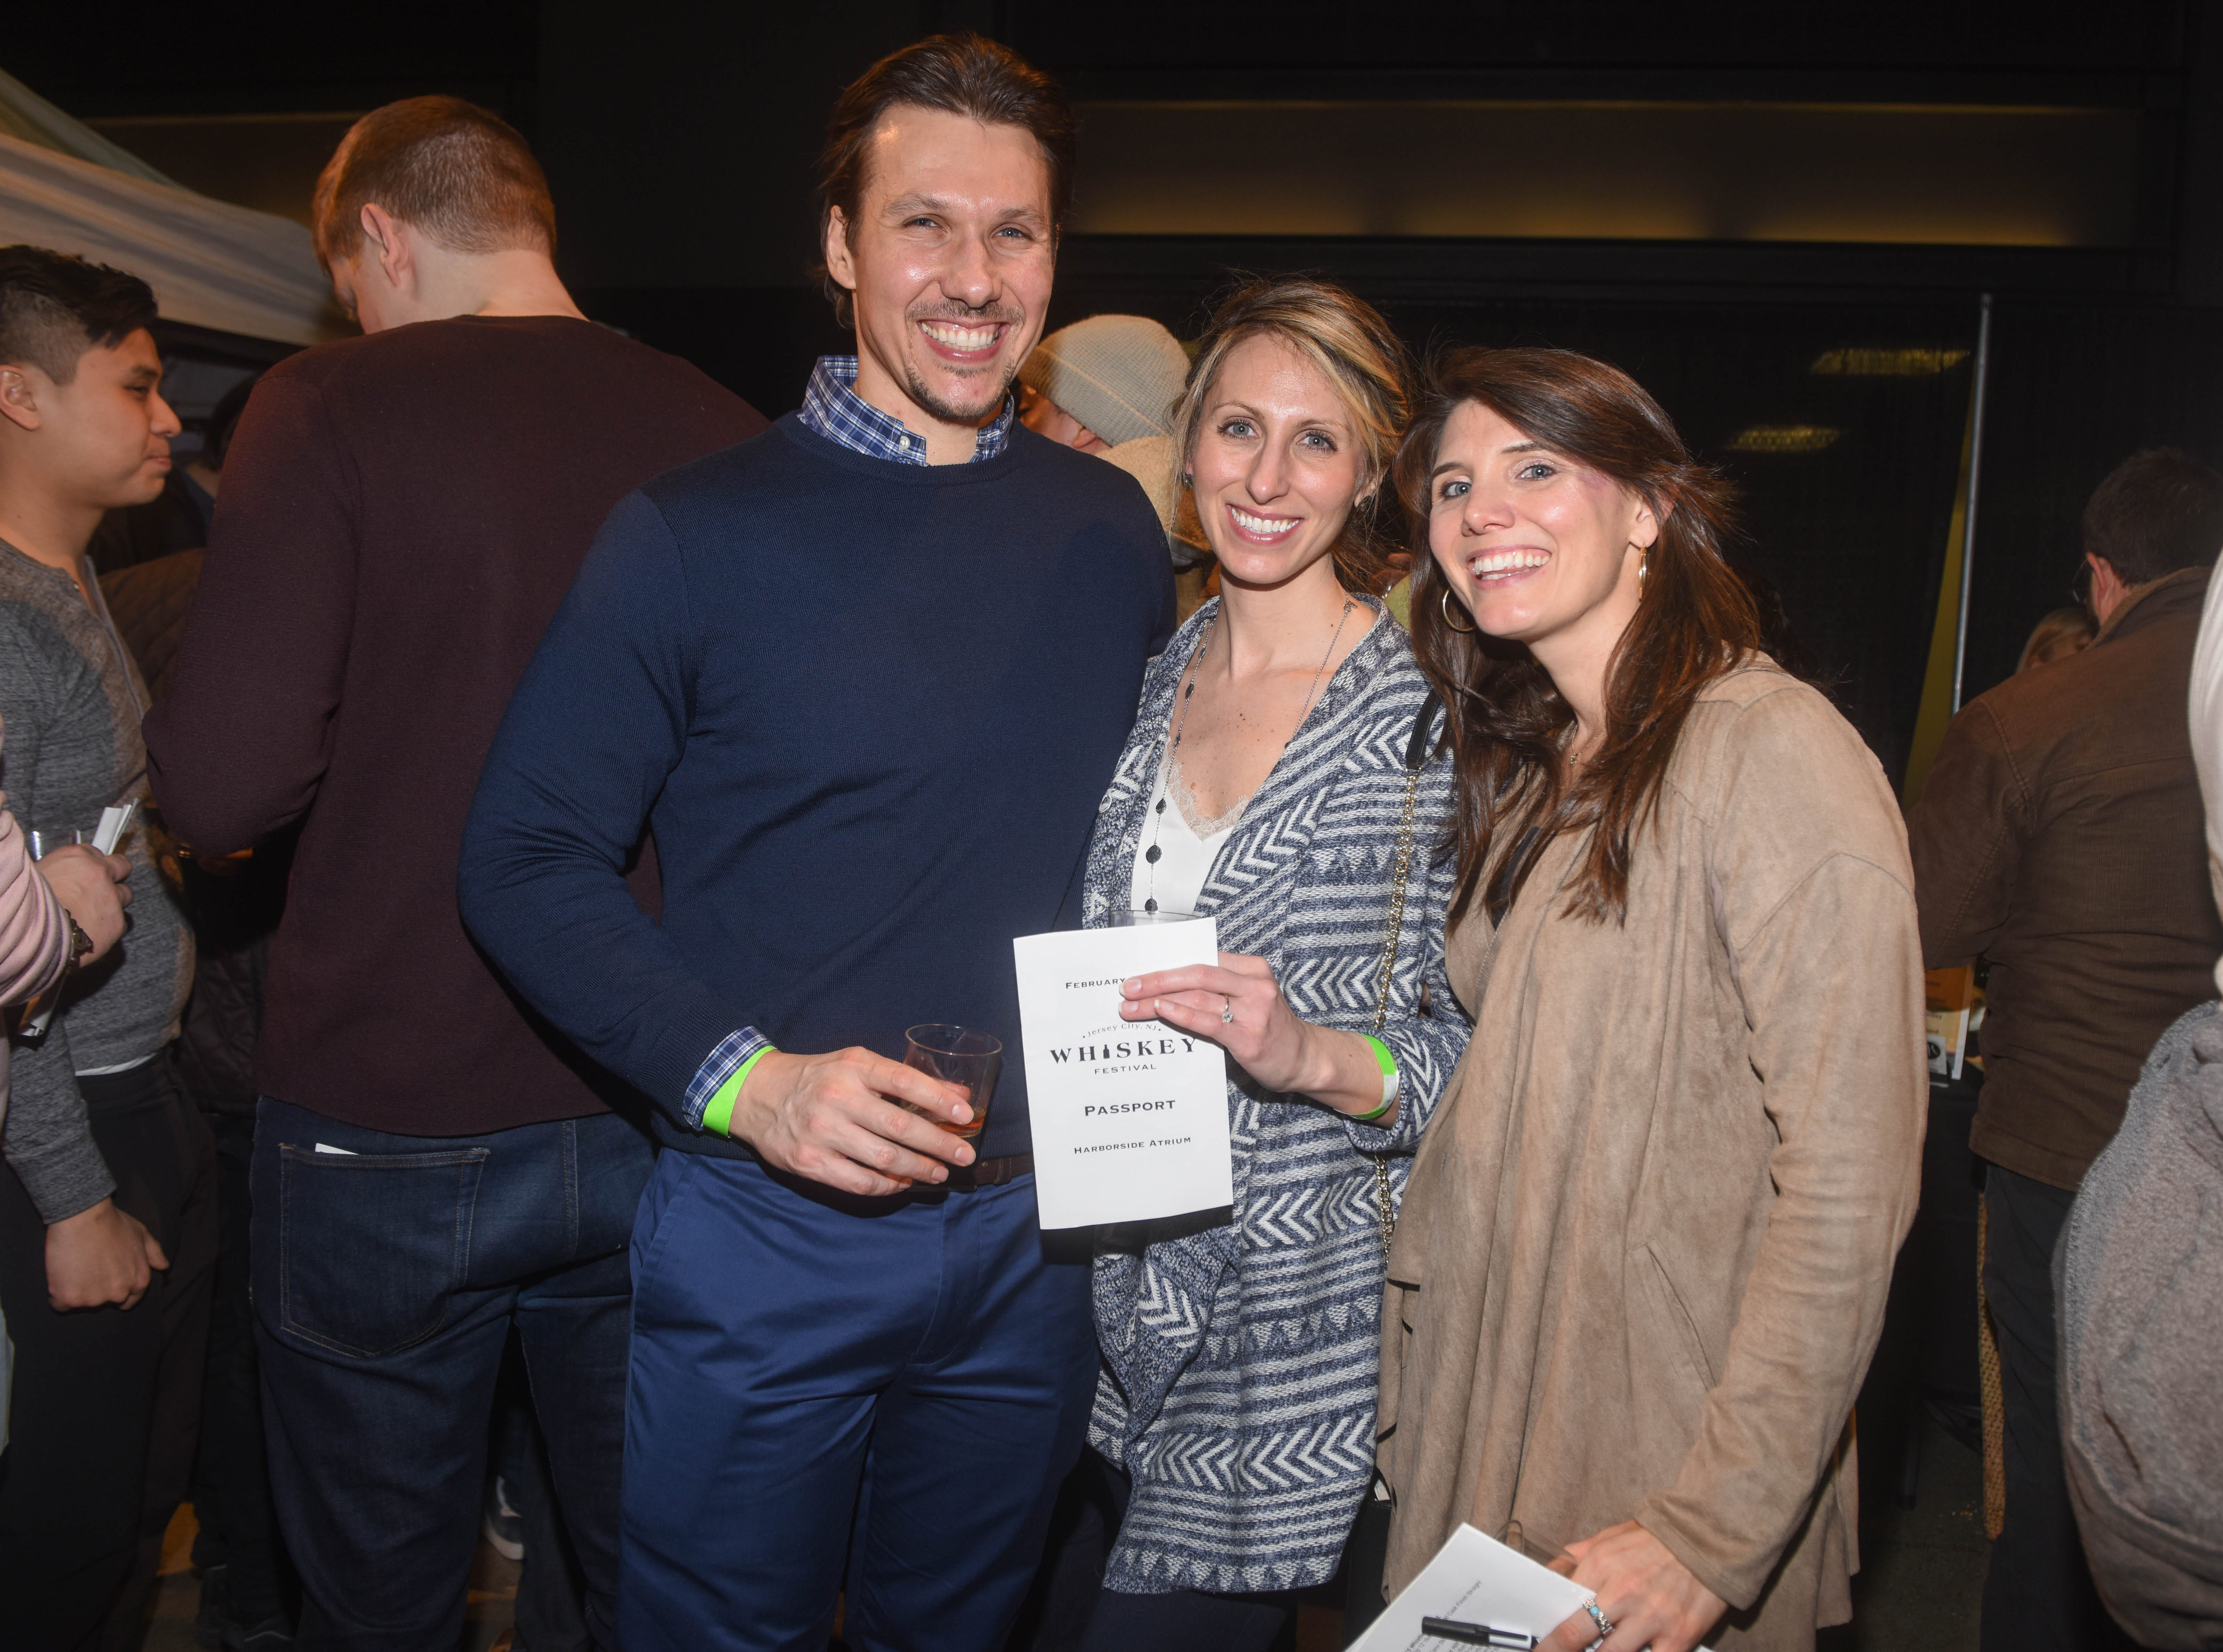 Jason Orr, Cassandra Svenson and Emily Landgraf. Jersey City Whiskey Fest was held at Harborside Atrium. The event featured over 100 styles of whiskey and spirits. 02/01/2019